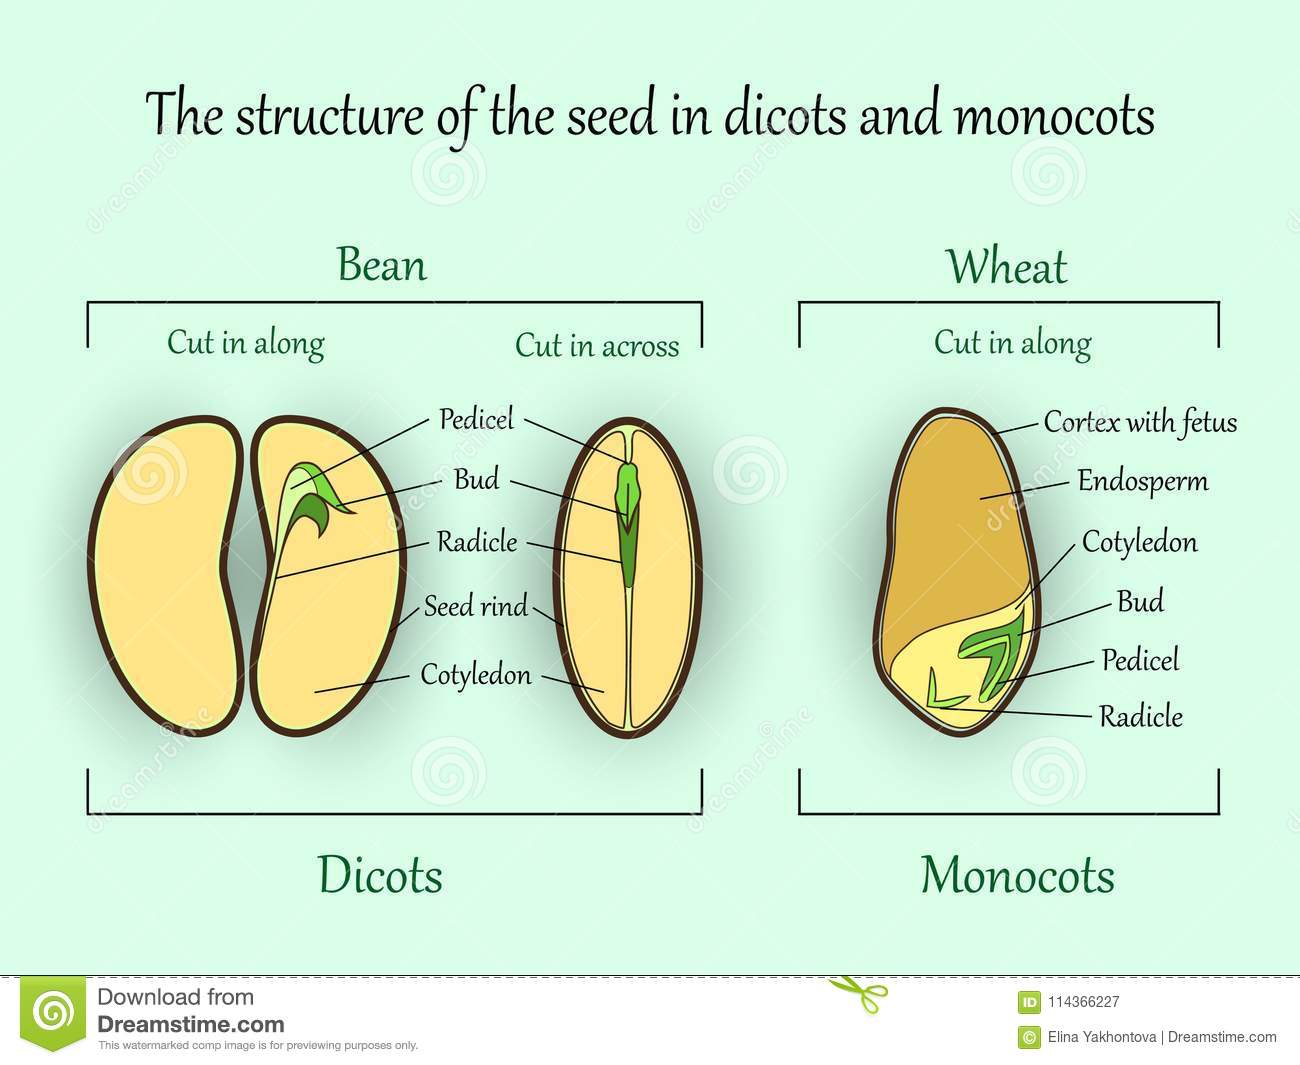 hight resolution of vector education botany banner structure monocot and dicot plant seeds in cut sections agriculture biology science illustration